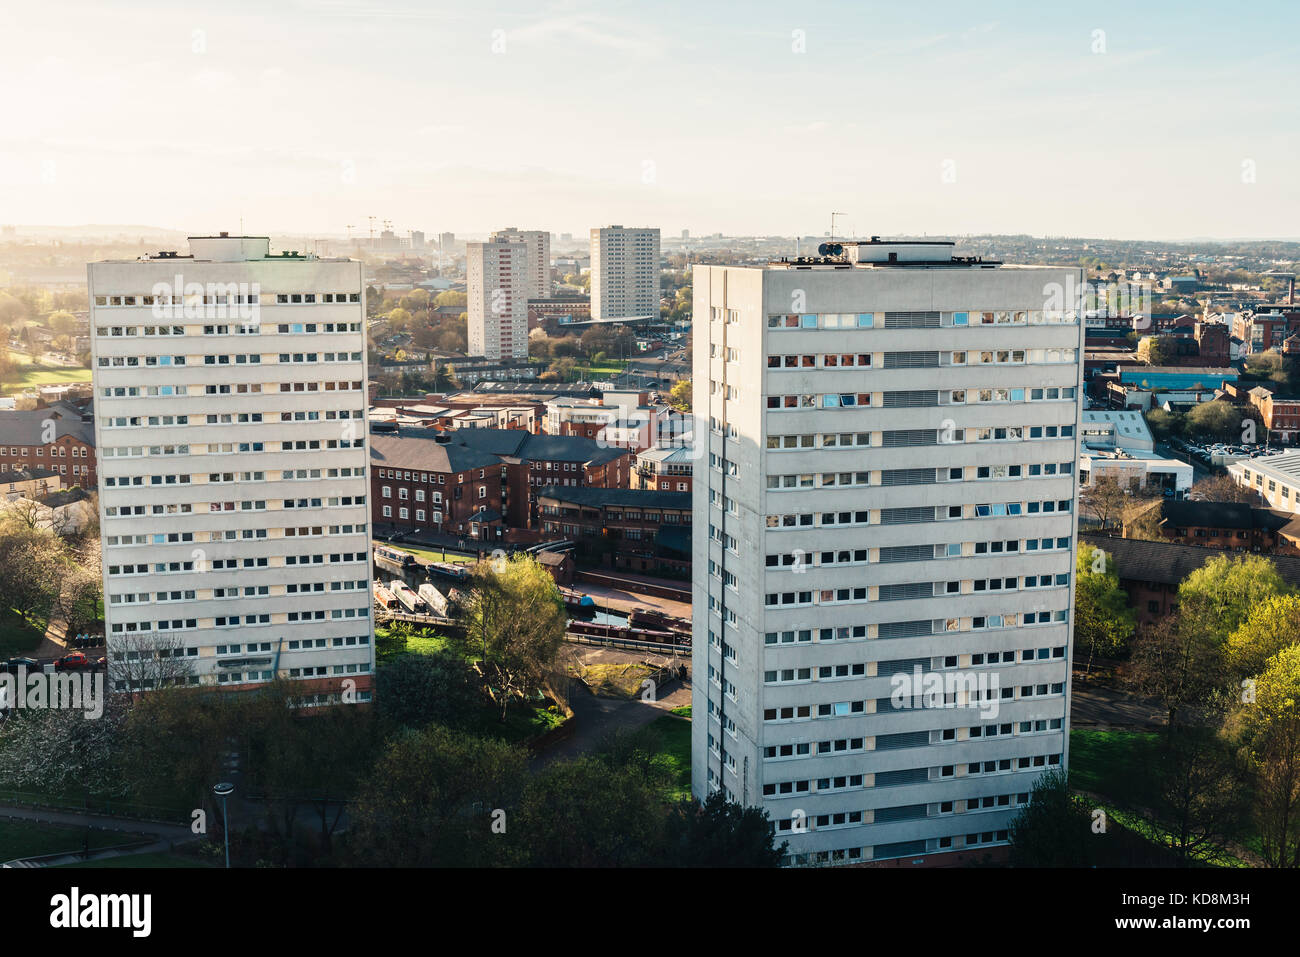 Aerial view of one of Birmingham's historic canals alongside tower blocks - Stock Image